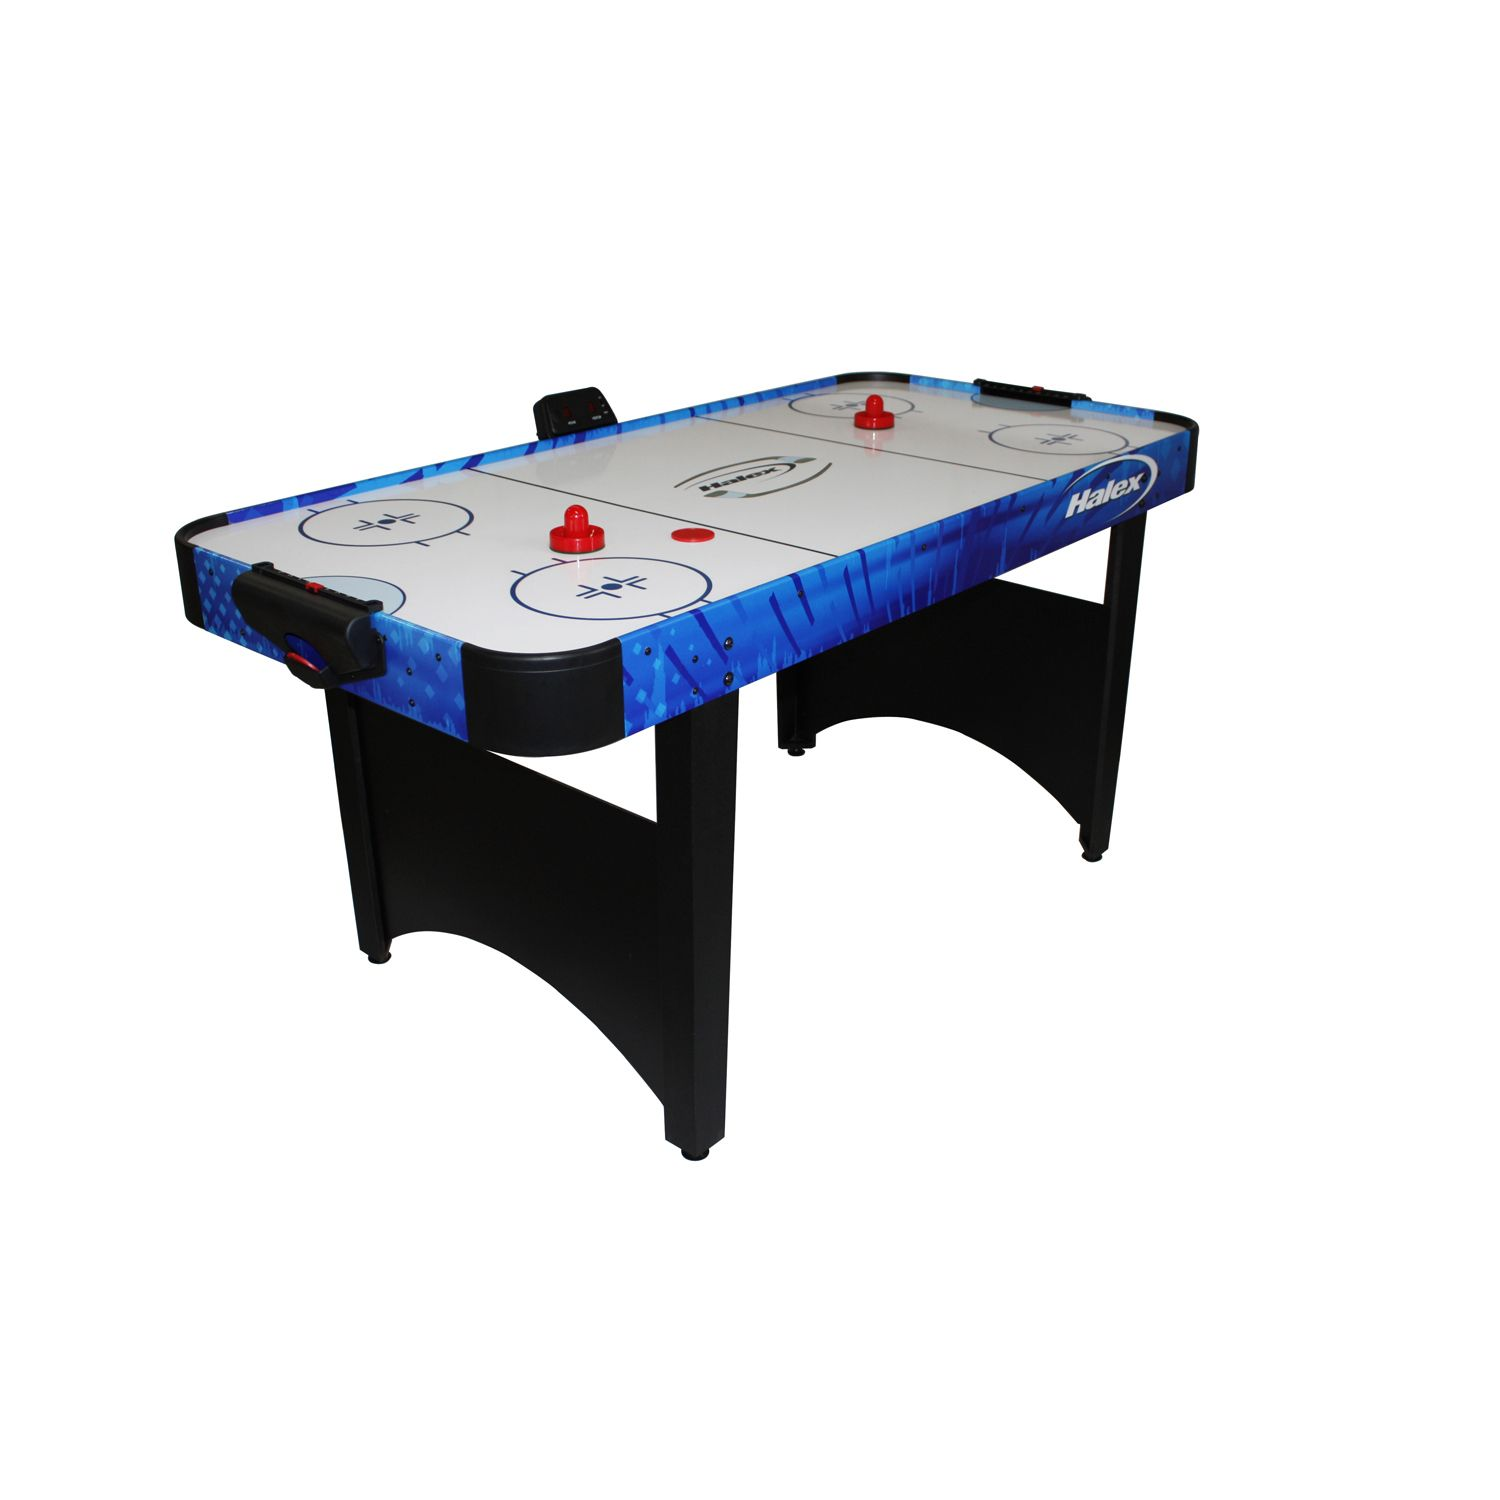 Halex 66in Air Hockey Table With Tennis Top